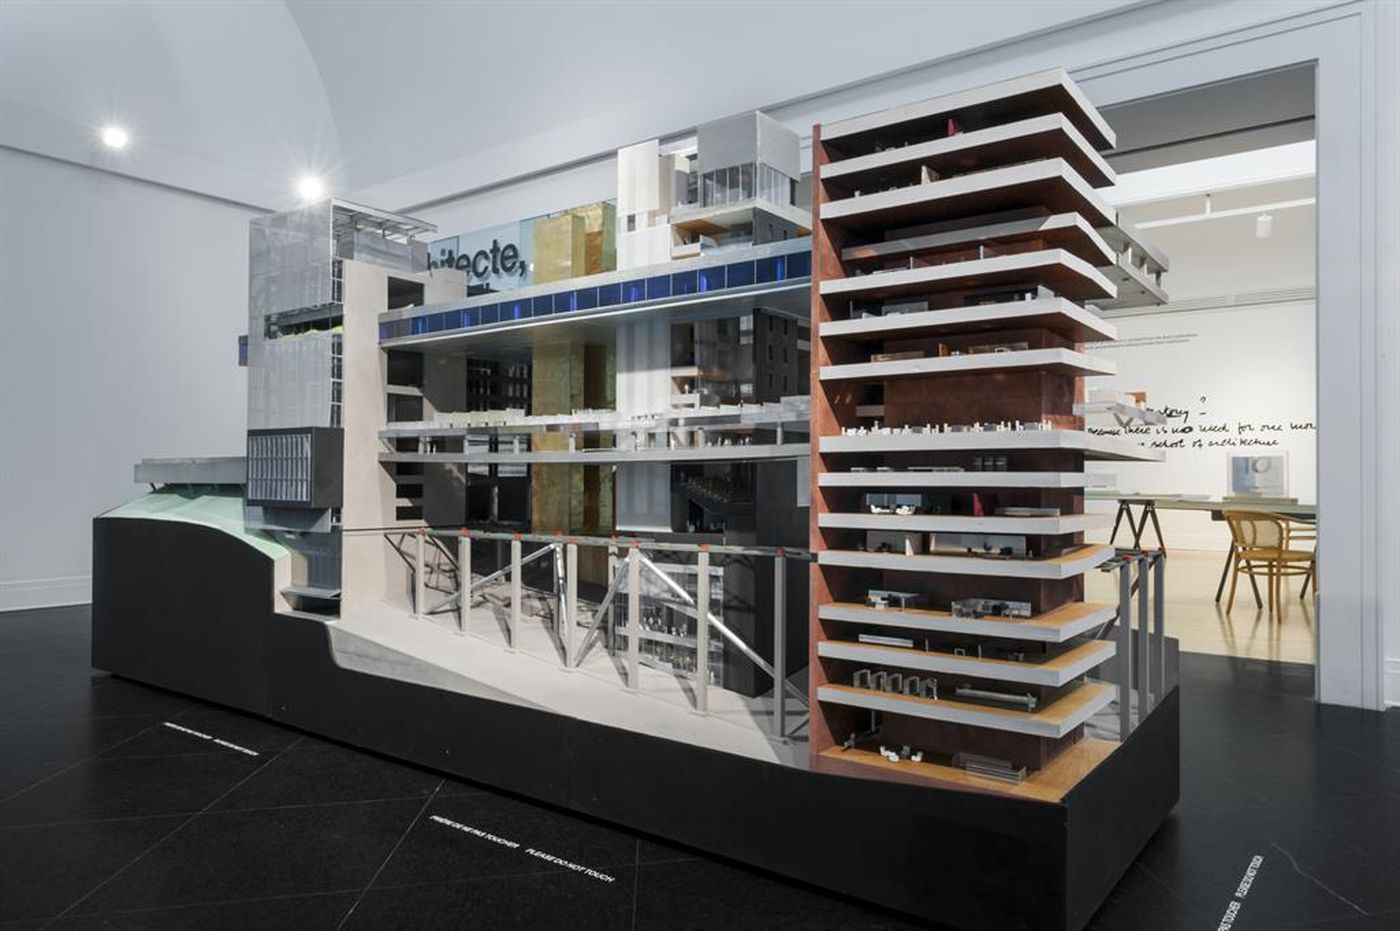 1:50 model for the Universal Headquarters Building, Universal City, Los Angeles County, California